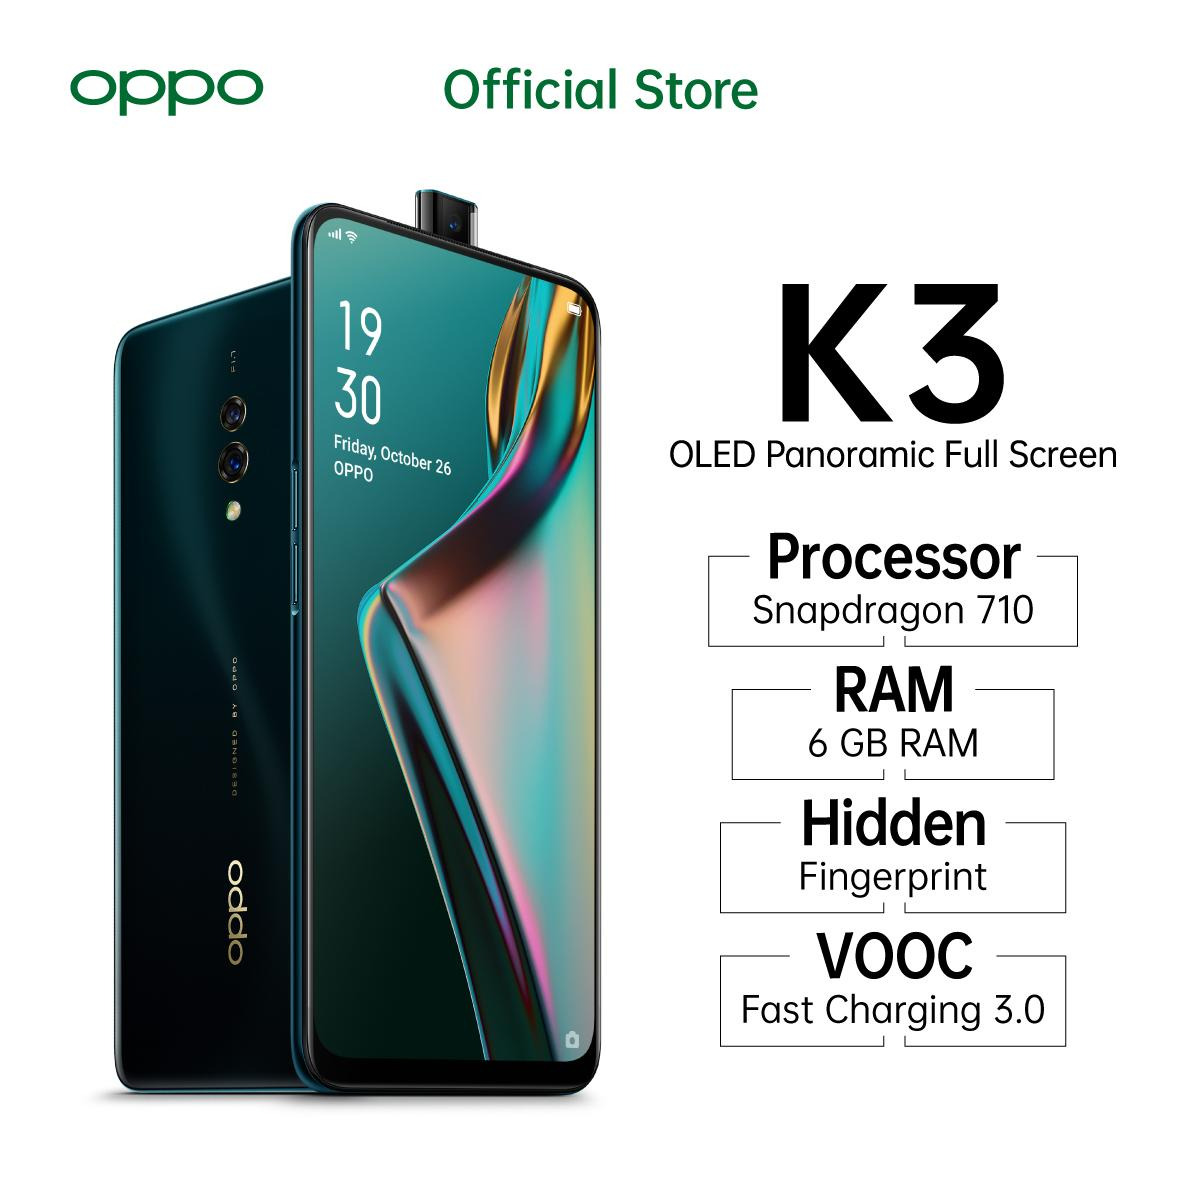 OPPO K3 Special Online Edition 6/64GB  OLED Panoramic Screen, COD, Cicilan 0%,